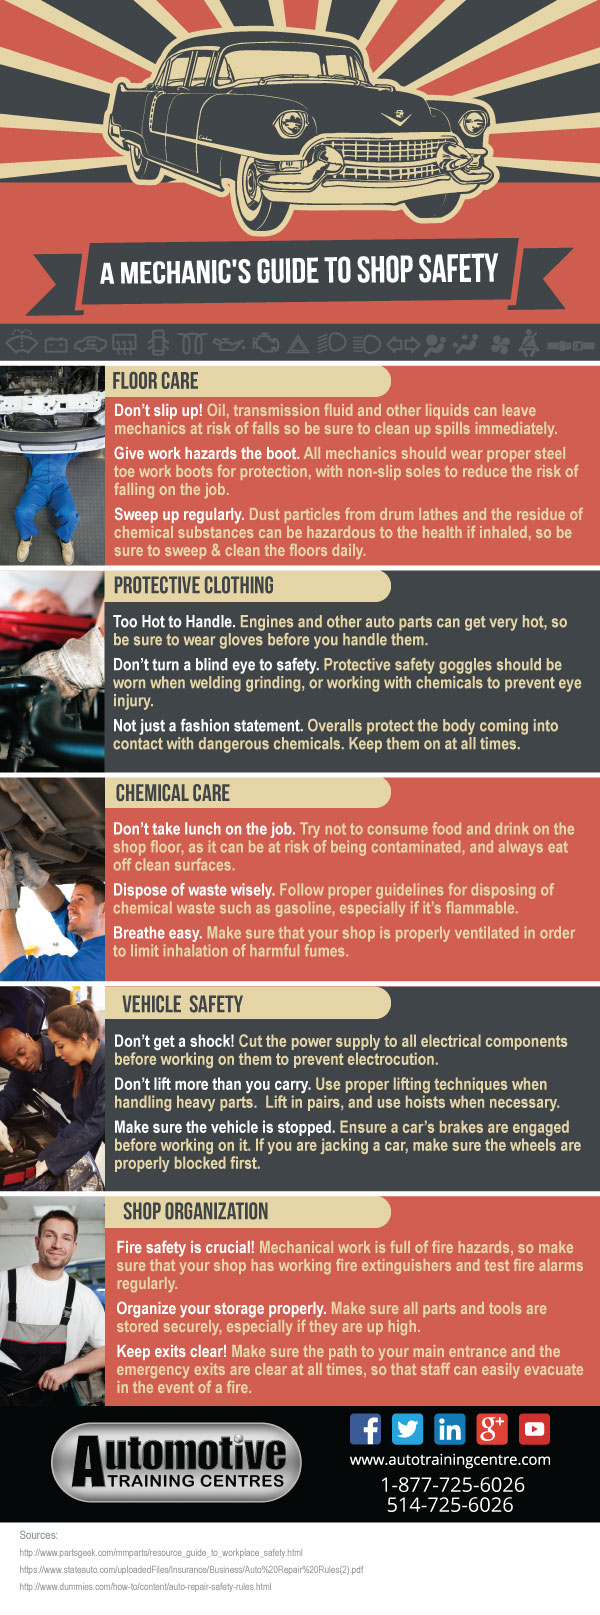 atcmontreal_mechanicsguidetoshopsafety_infographic_sept2016